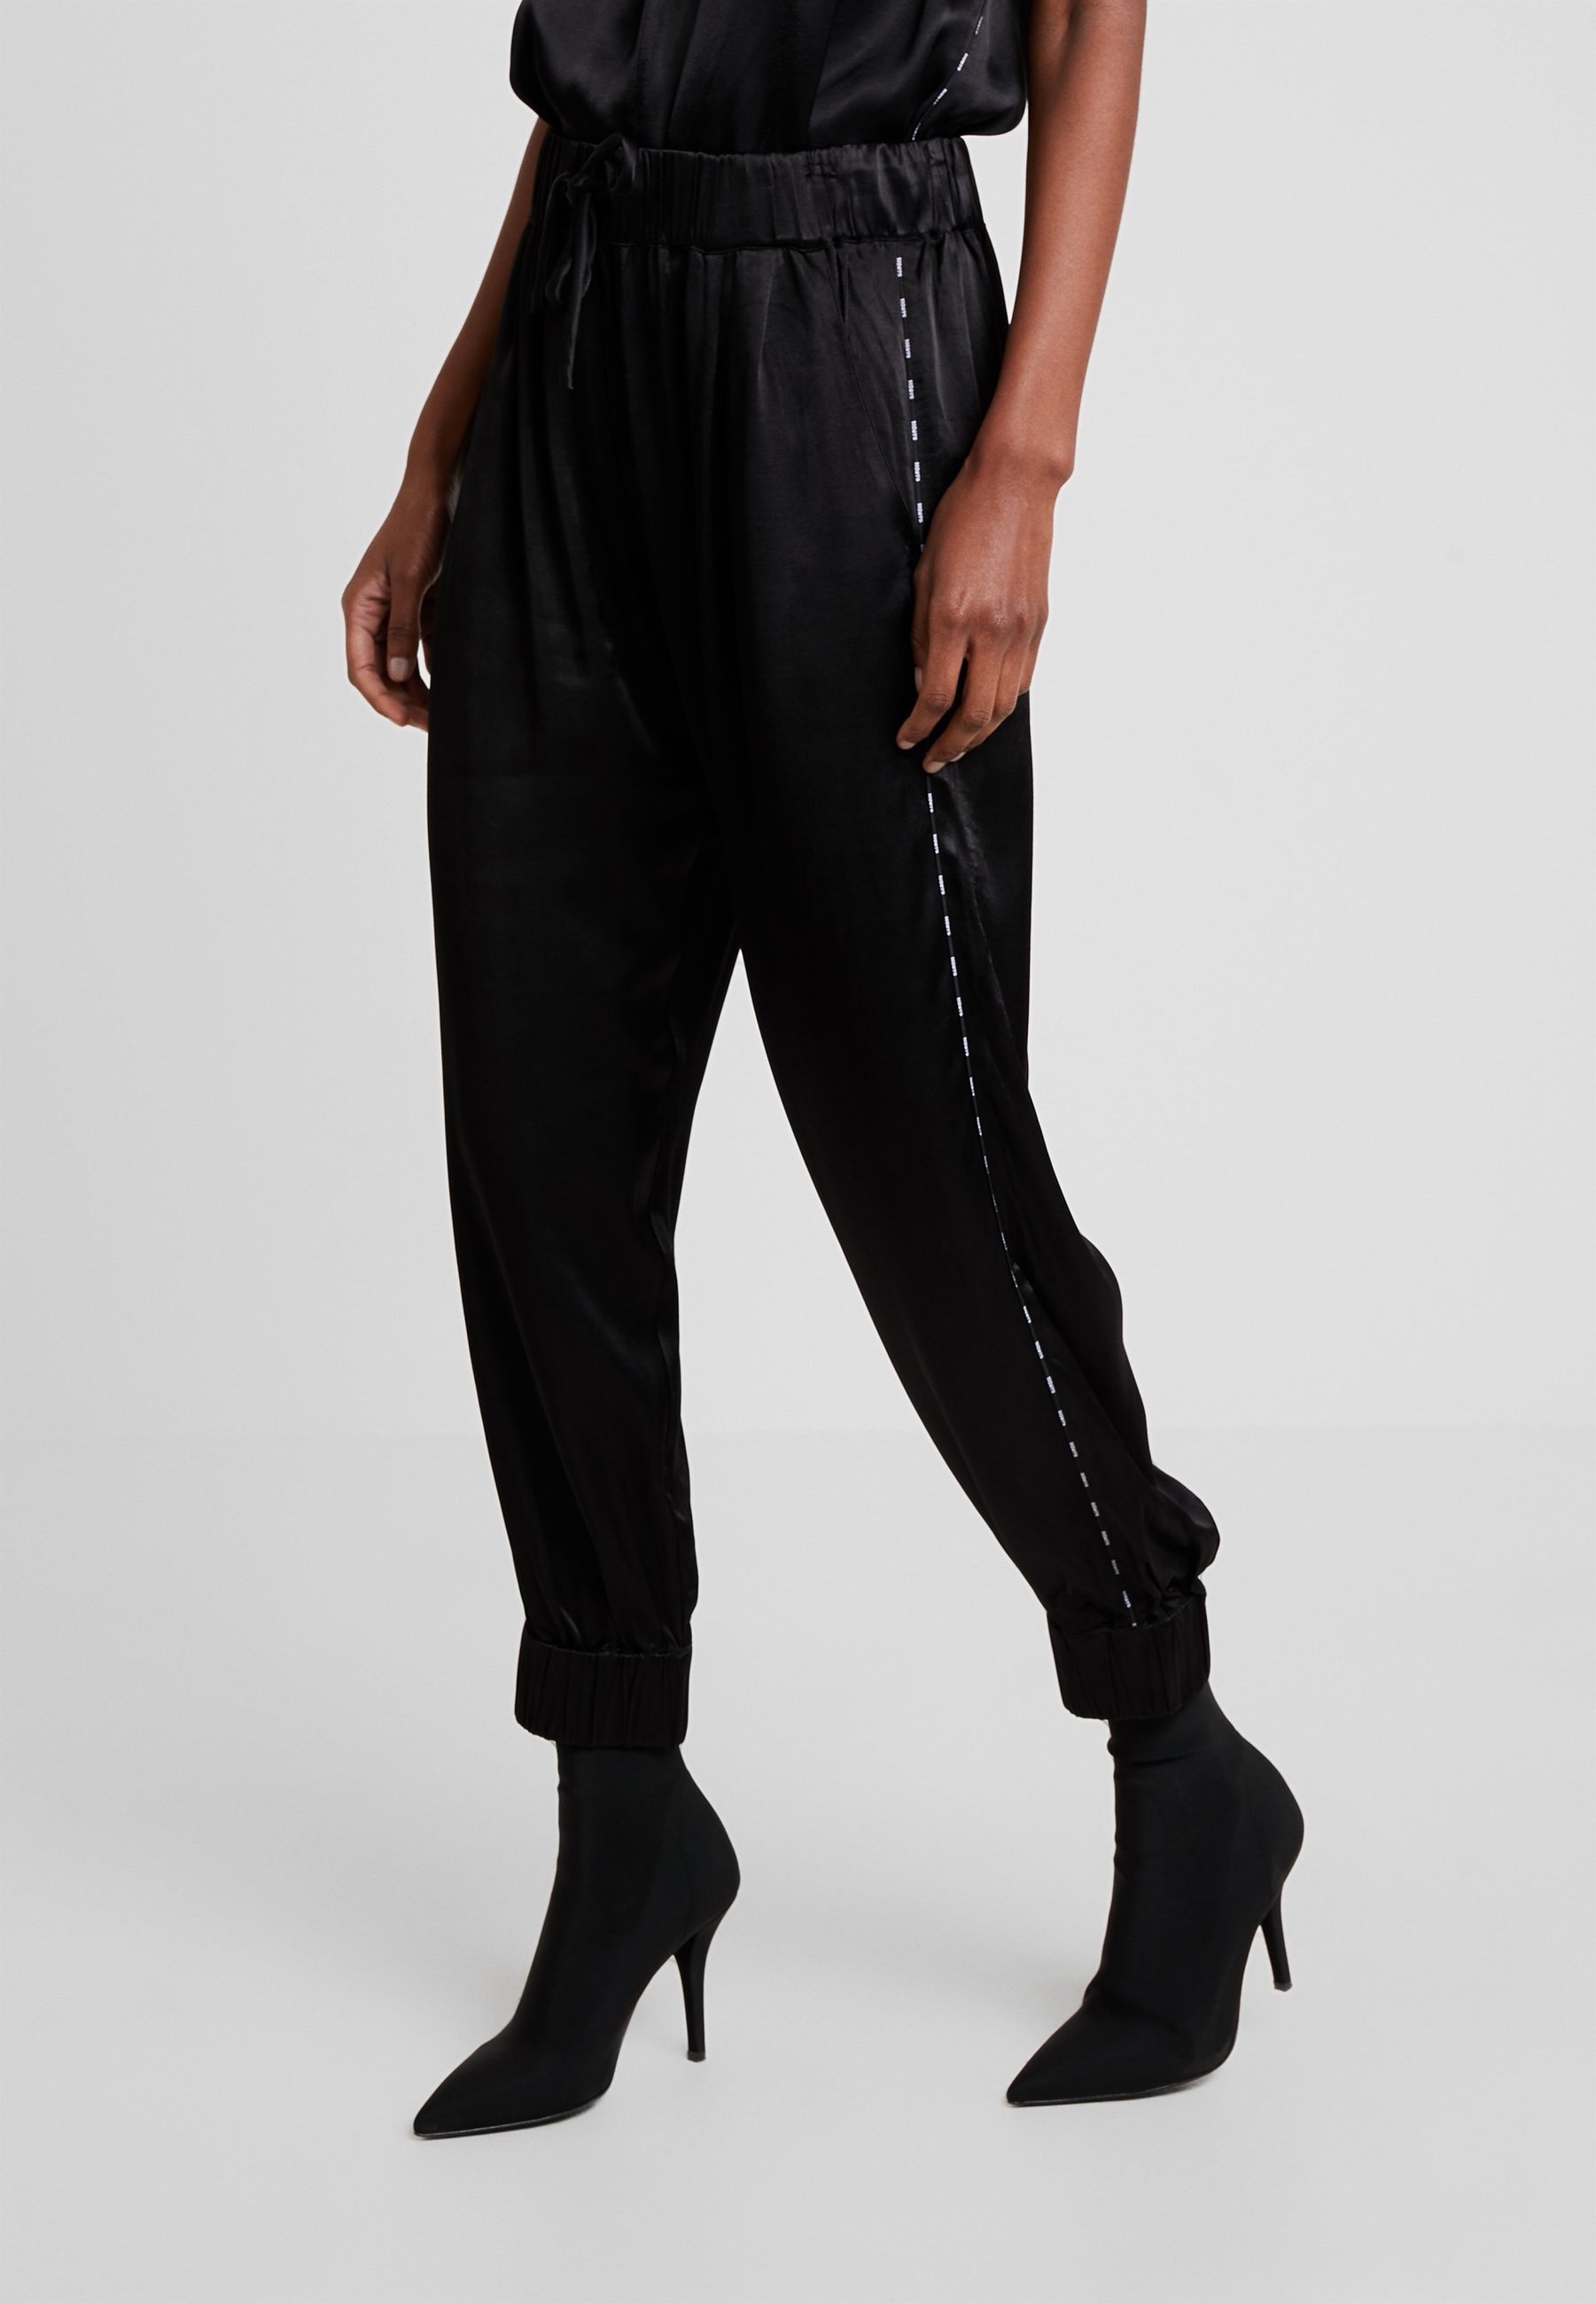 10DAYS WIDE PANTS - Stoffhose black